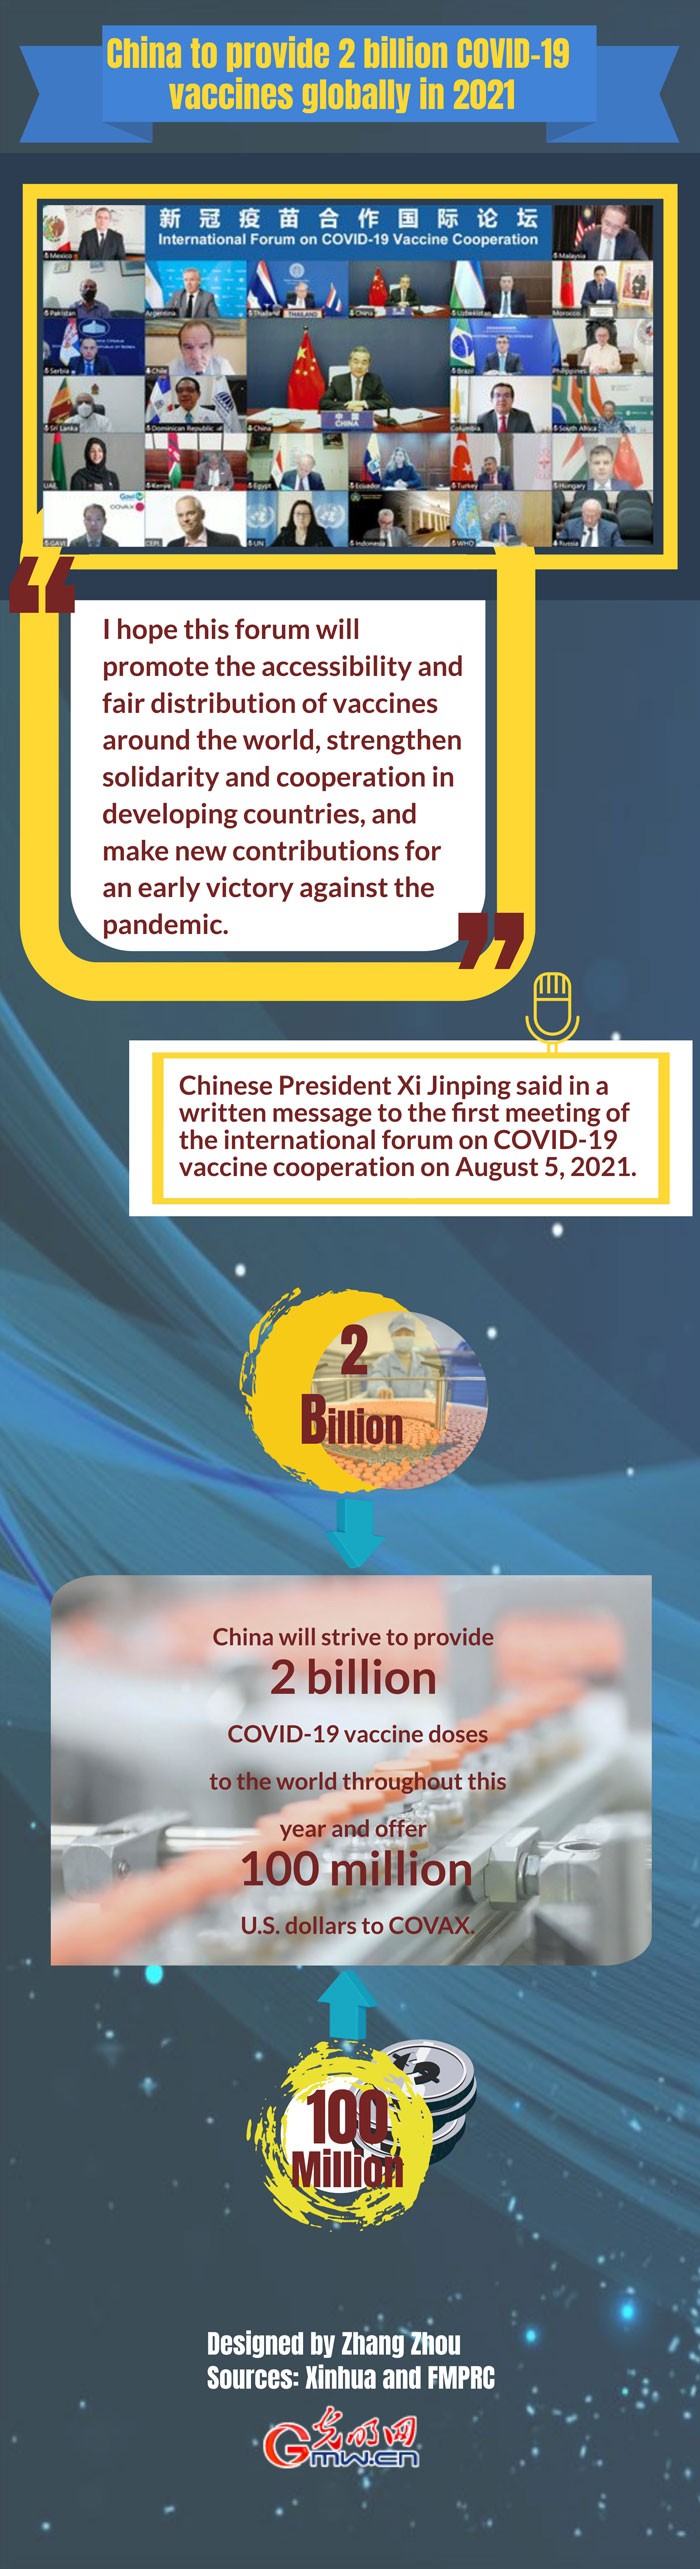 Infographic: China to provide 2 billion COVID-19 vaccines globally in 2021